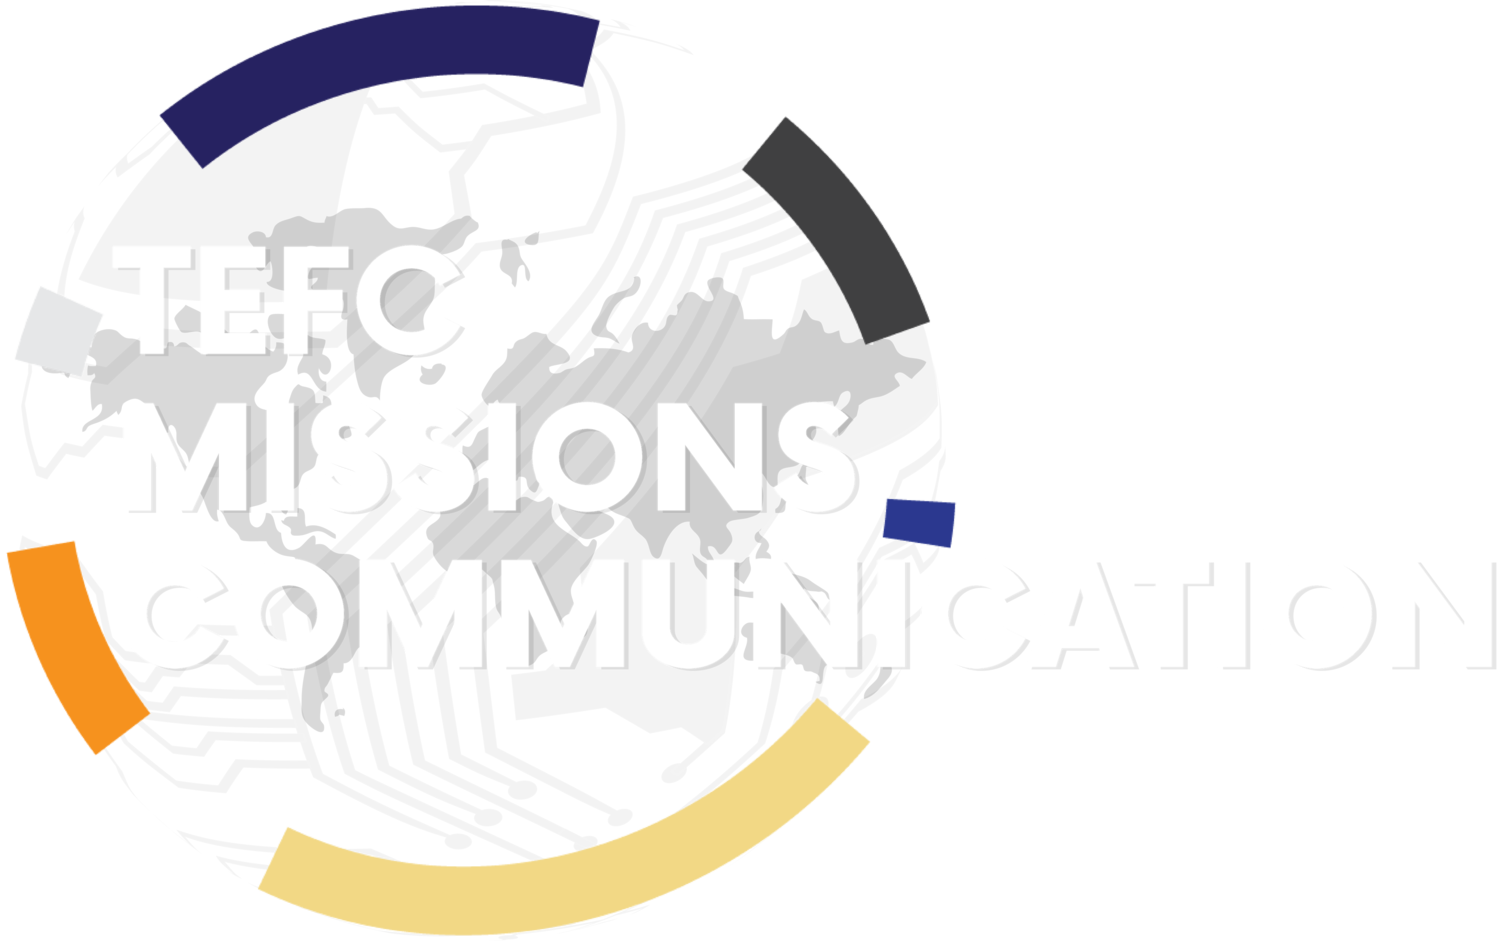 TEFC Missions Communication